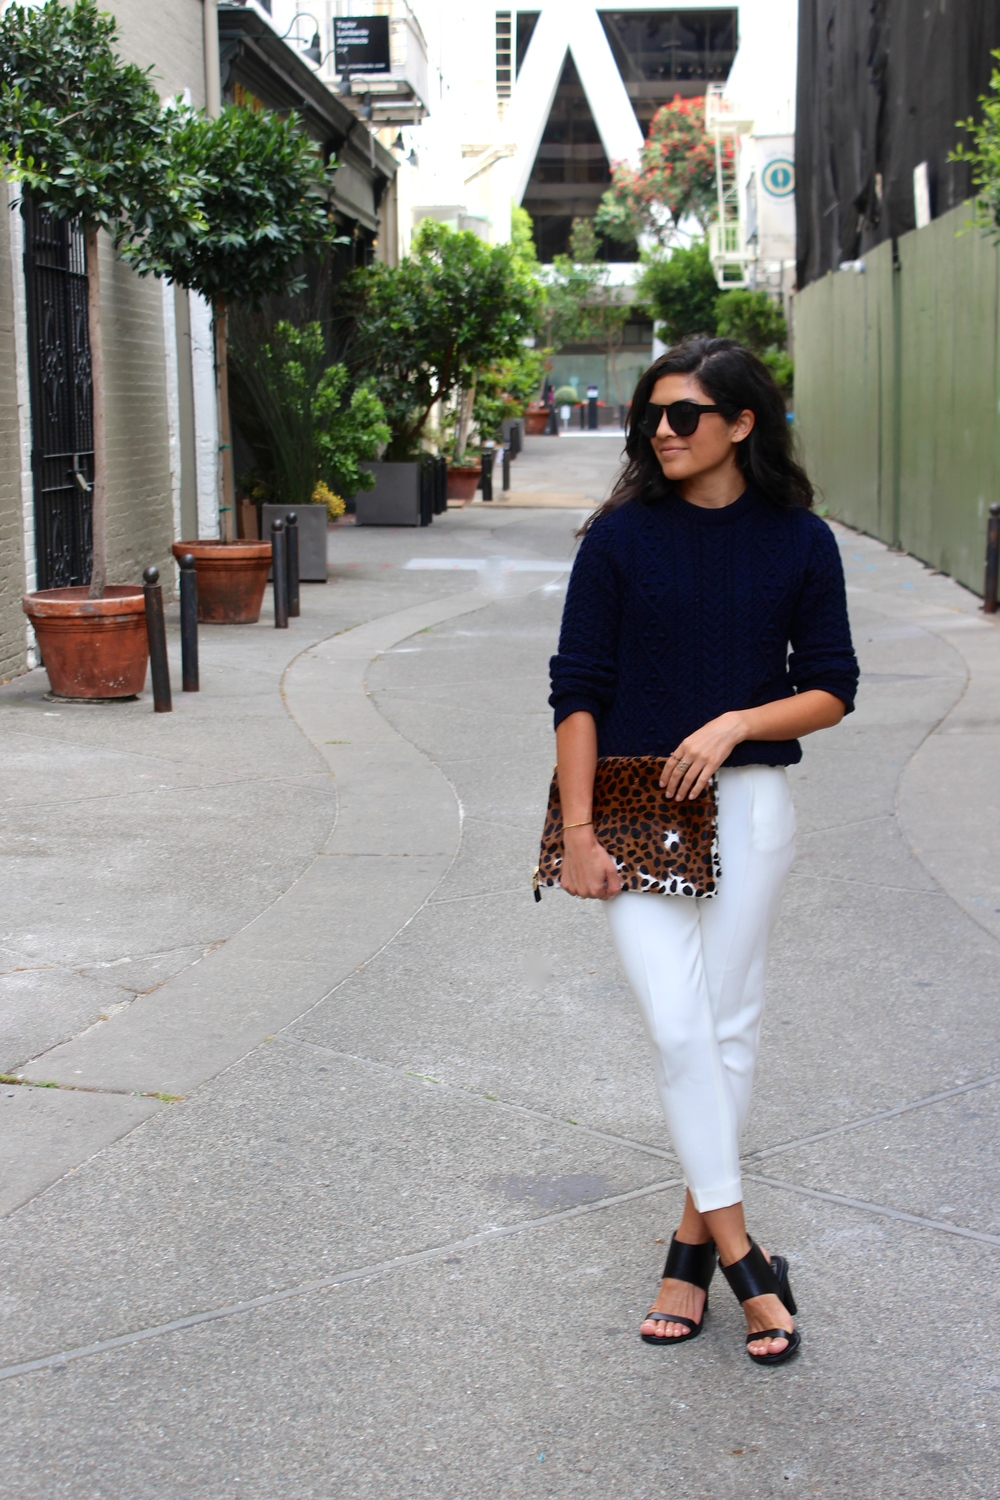 10 ways to wear white pants after Labor Day